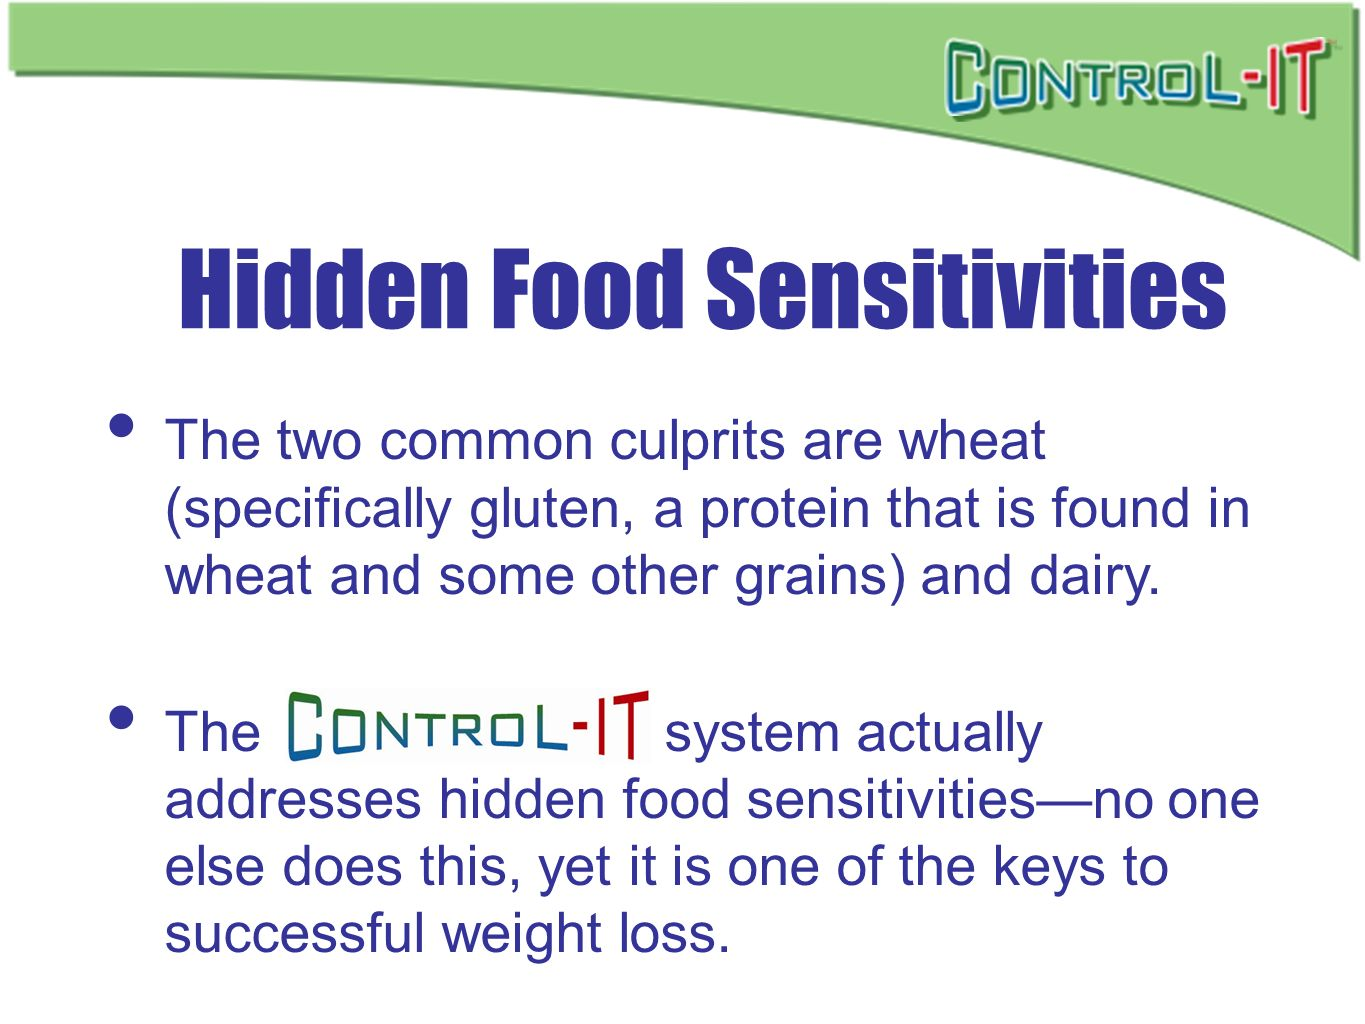 Hidden Food Sensitivities The two common culprits are wheat (specifically gluten, a protein that is found in wheat and some other grains) and dairy. T